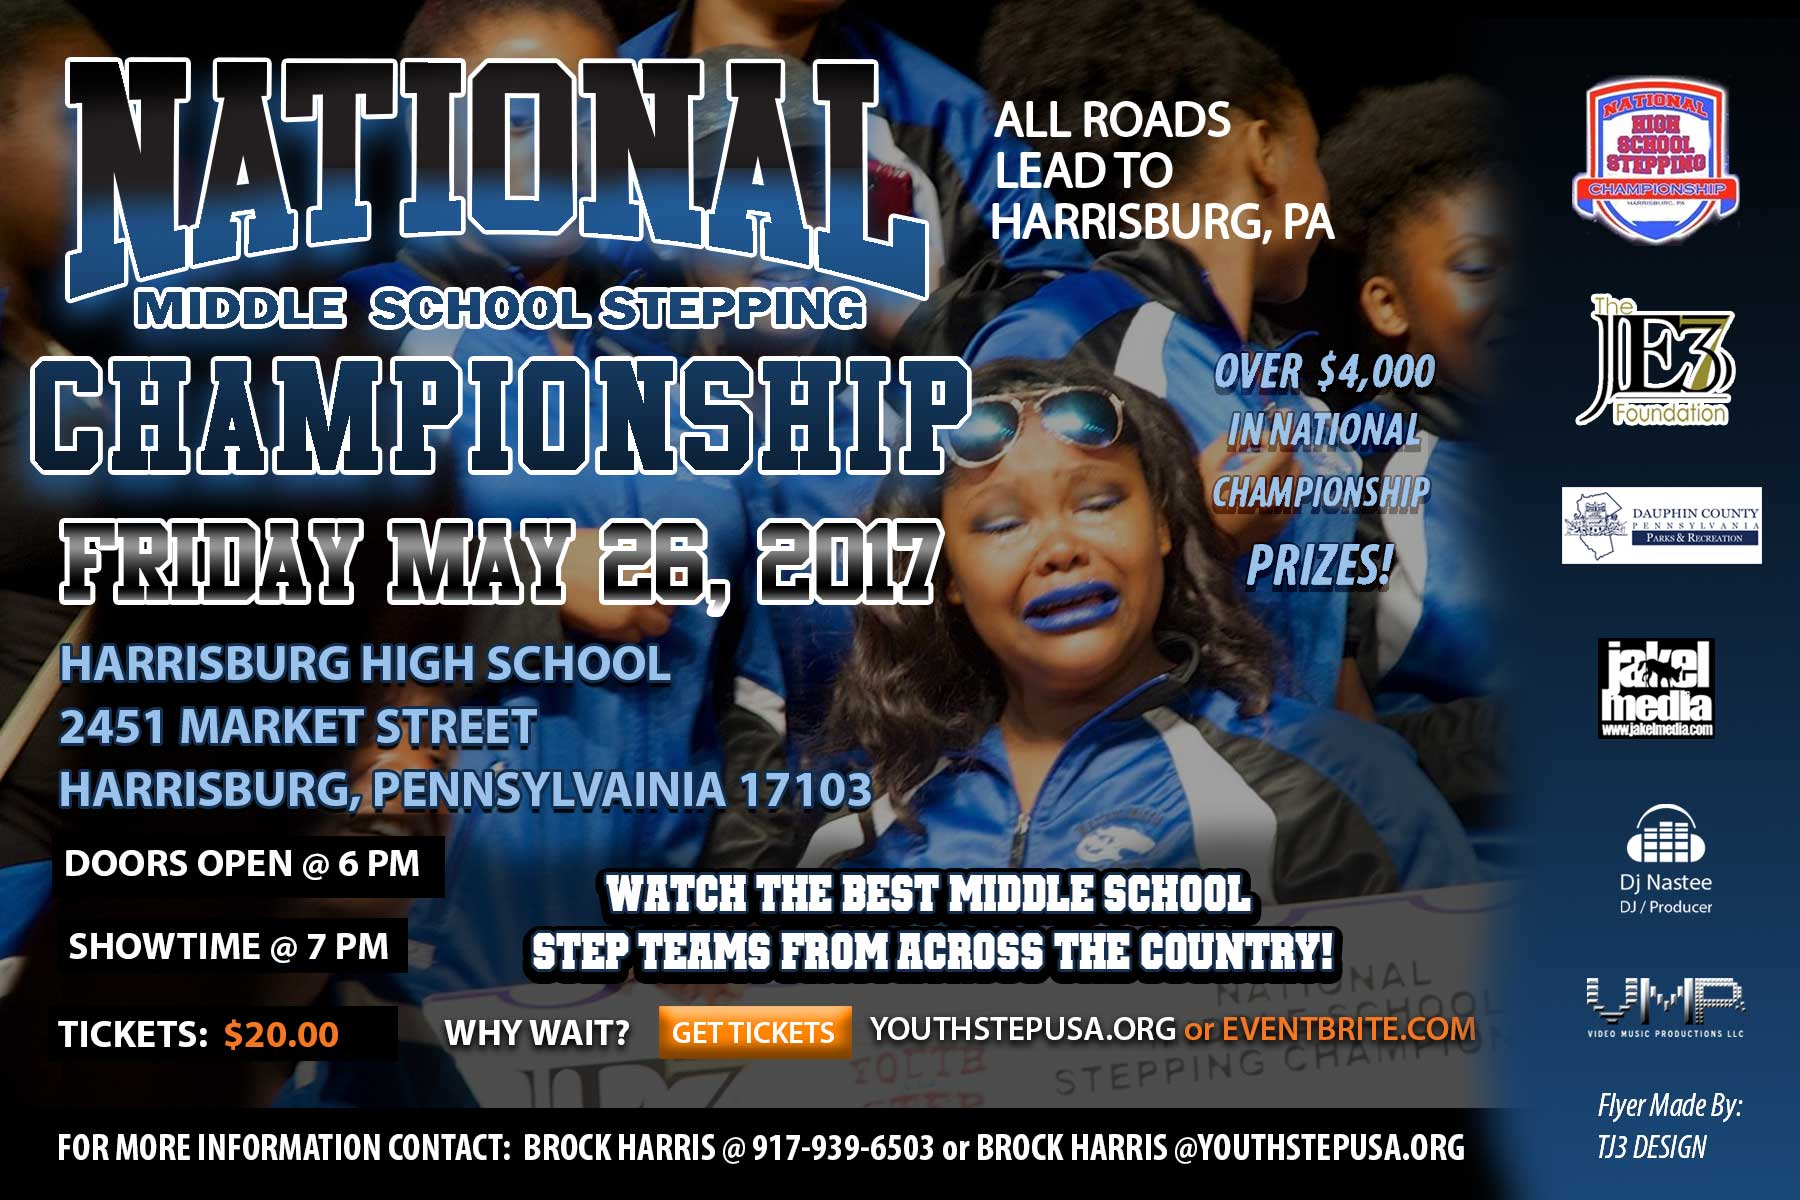 National Middle School Stepping Championship